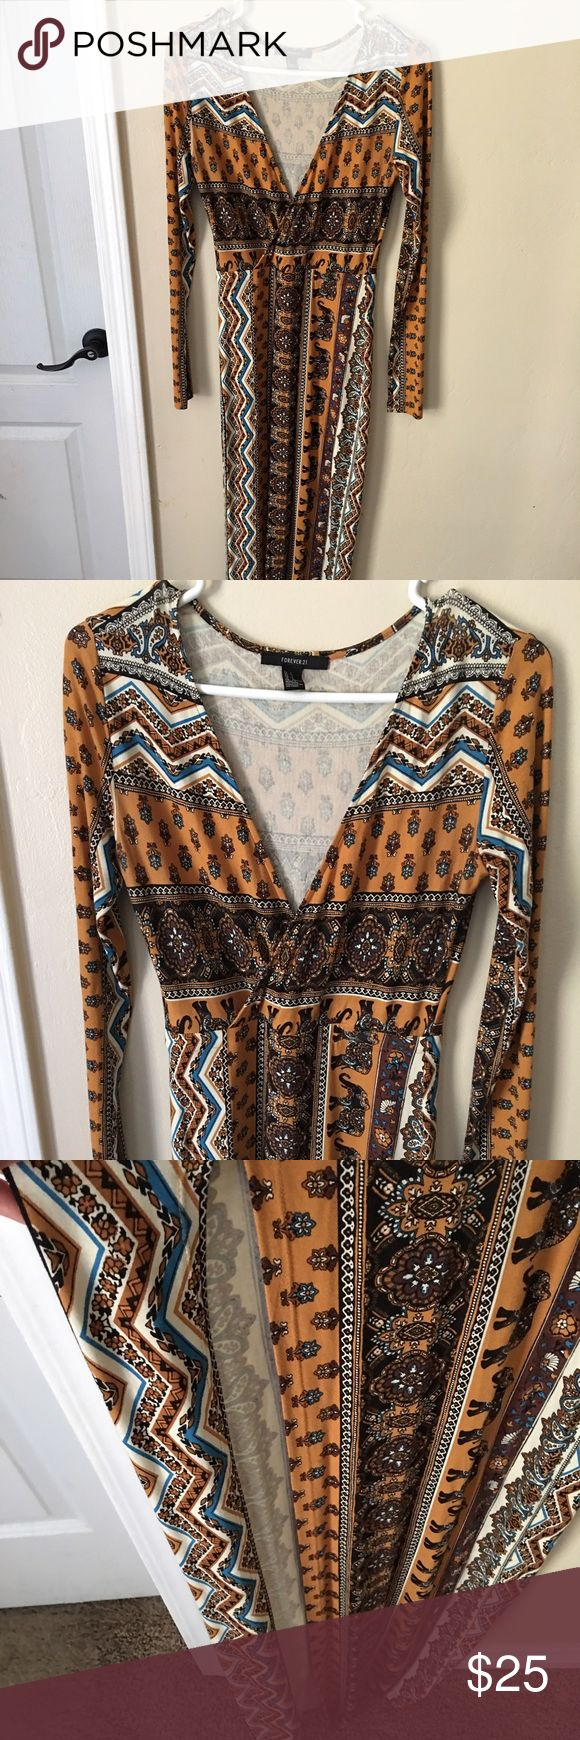 Tribal maxi dress Selling this long sleeve maxi dress form fitting high slit on the right side deep v chest area. Can be dressed up or down. Give me your best offer Forever 21 Dresses Maxi